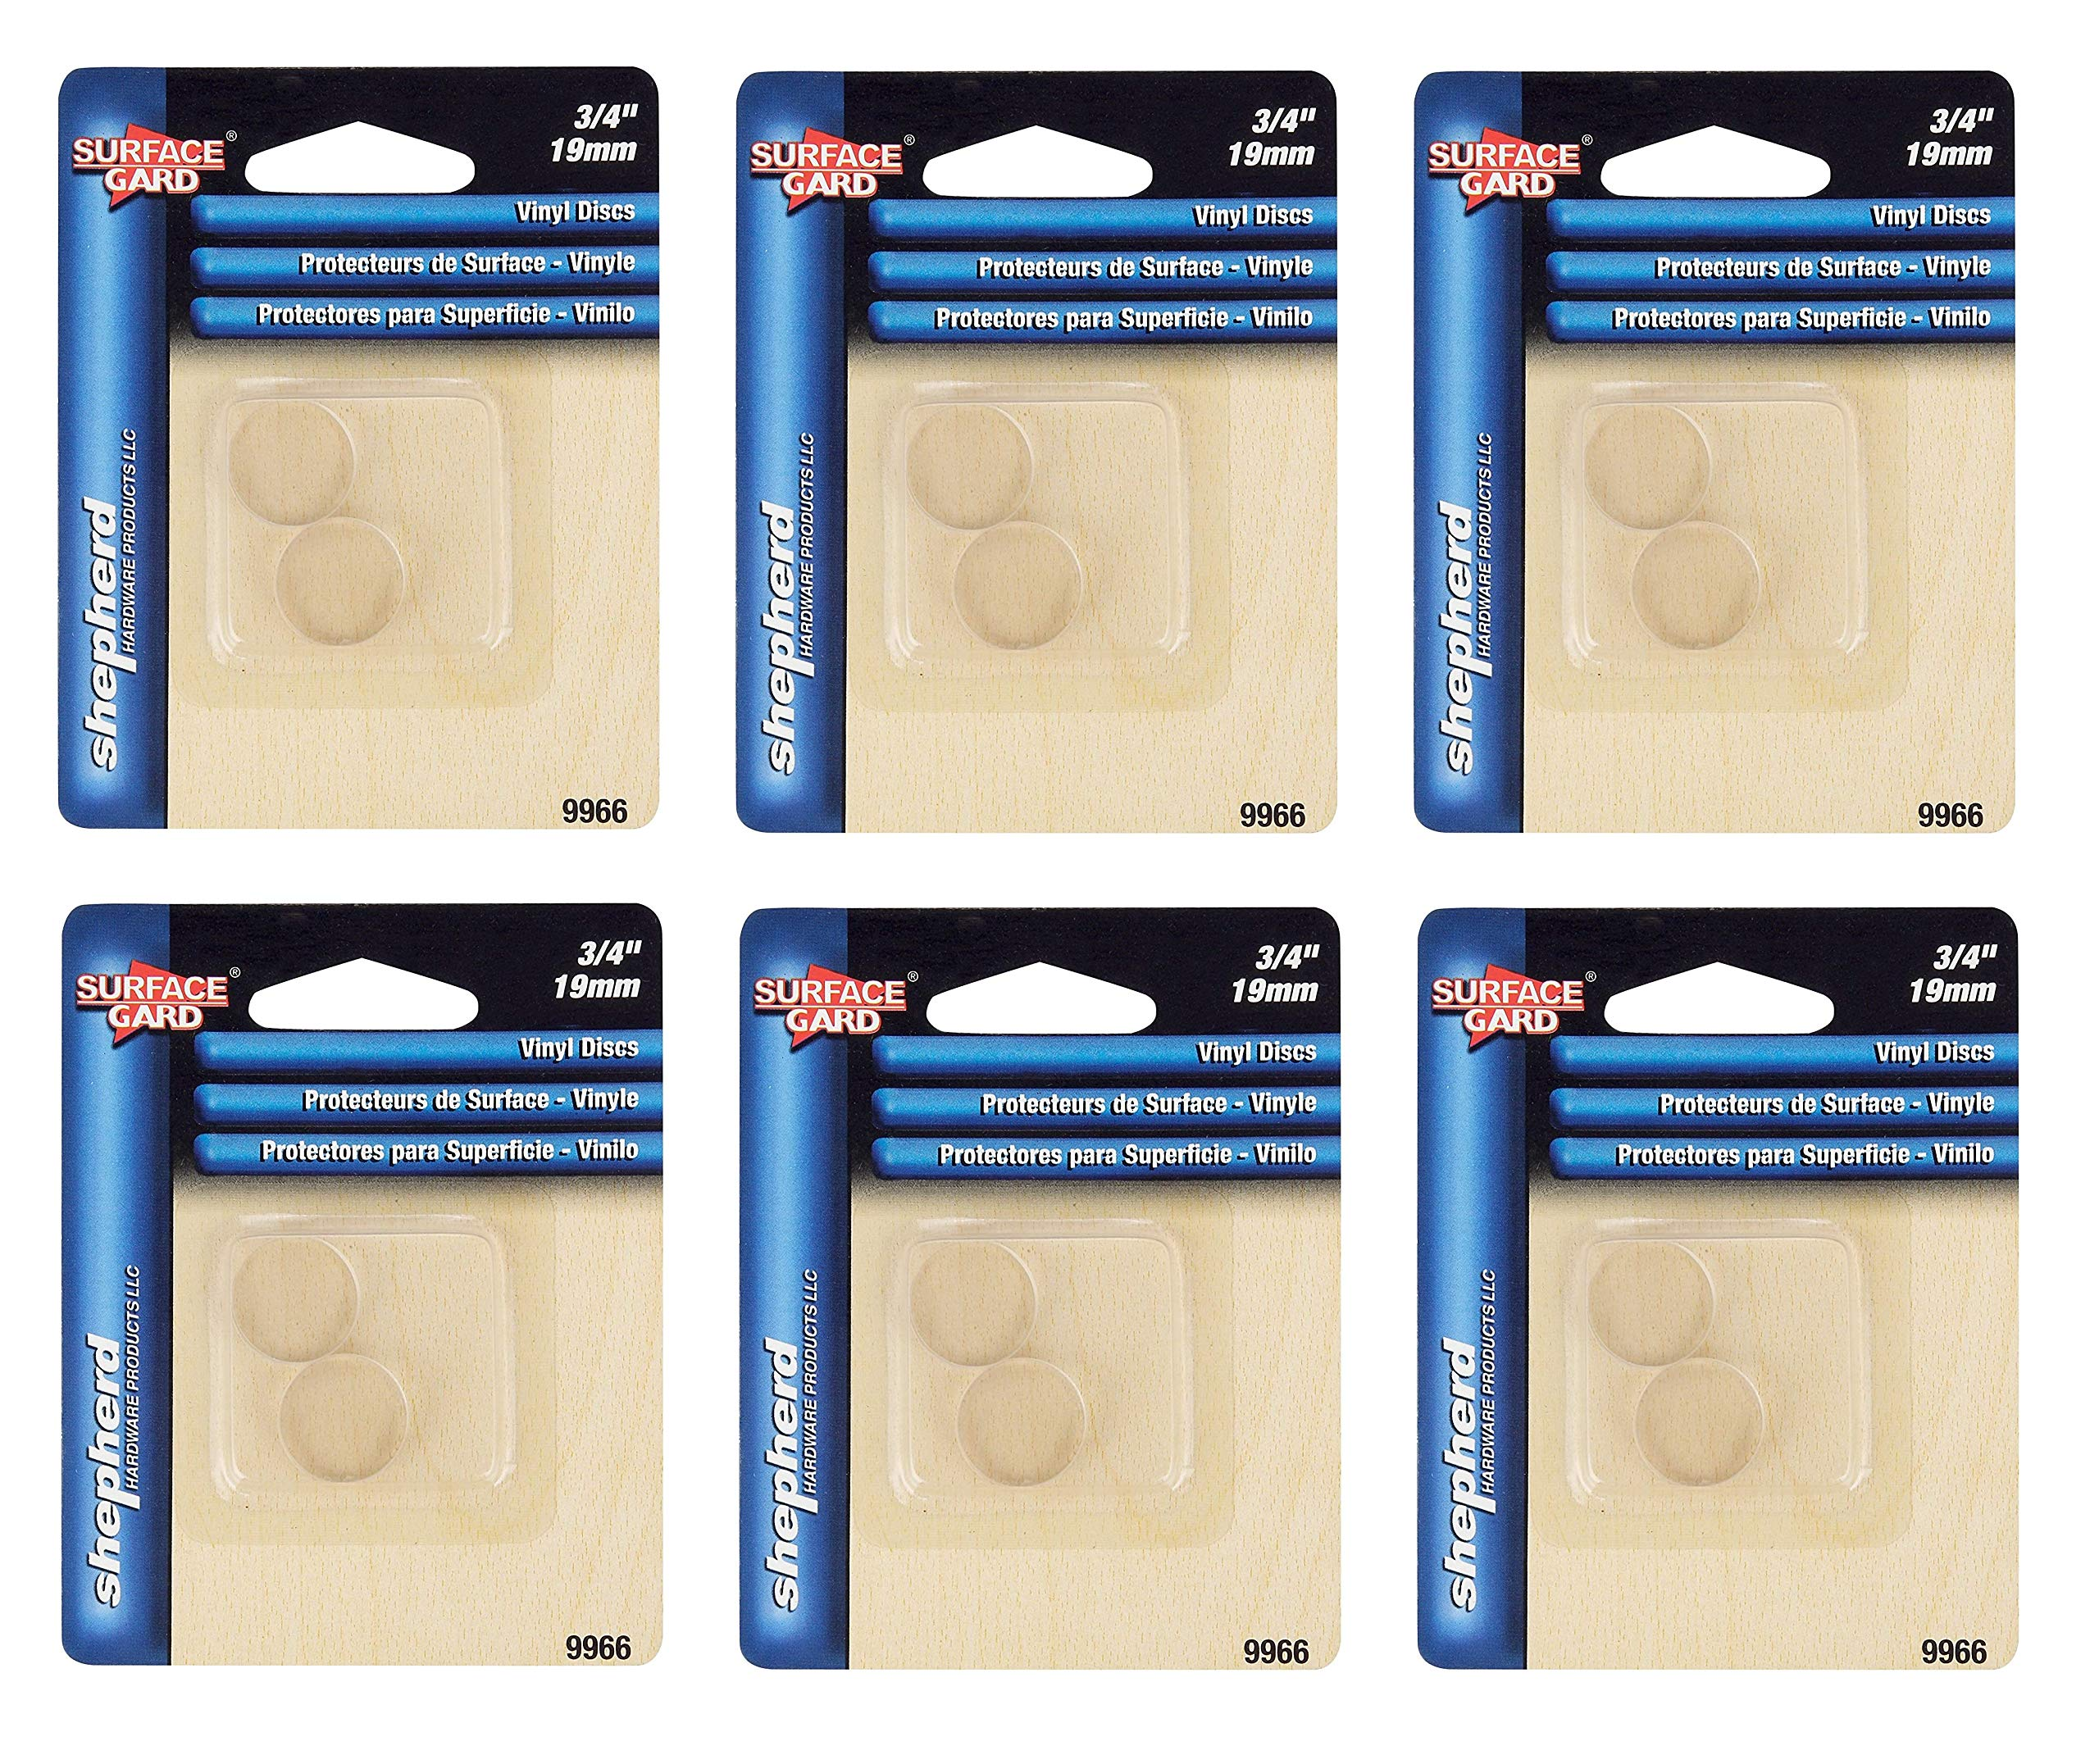 Shepherd Hardware 9966 3/4-Inch SurfaceGard Non-Adhesive Round Transparent Bumper Pads, Sold as 6 Pack, 60 Count Total